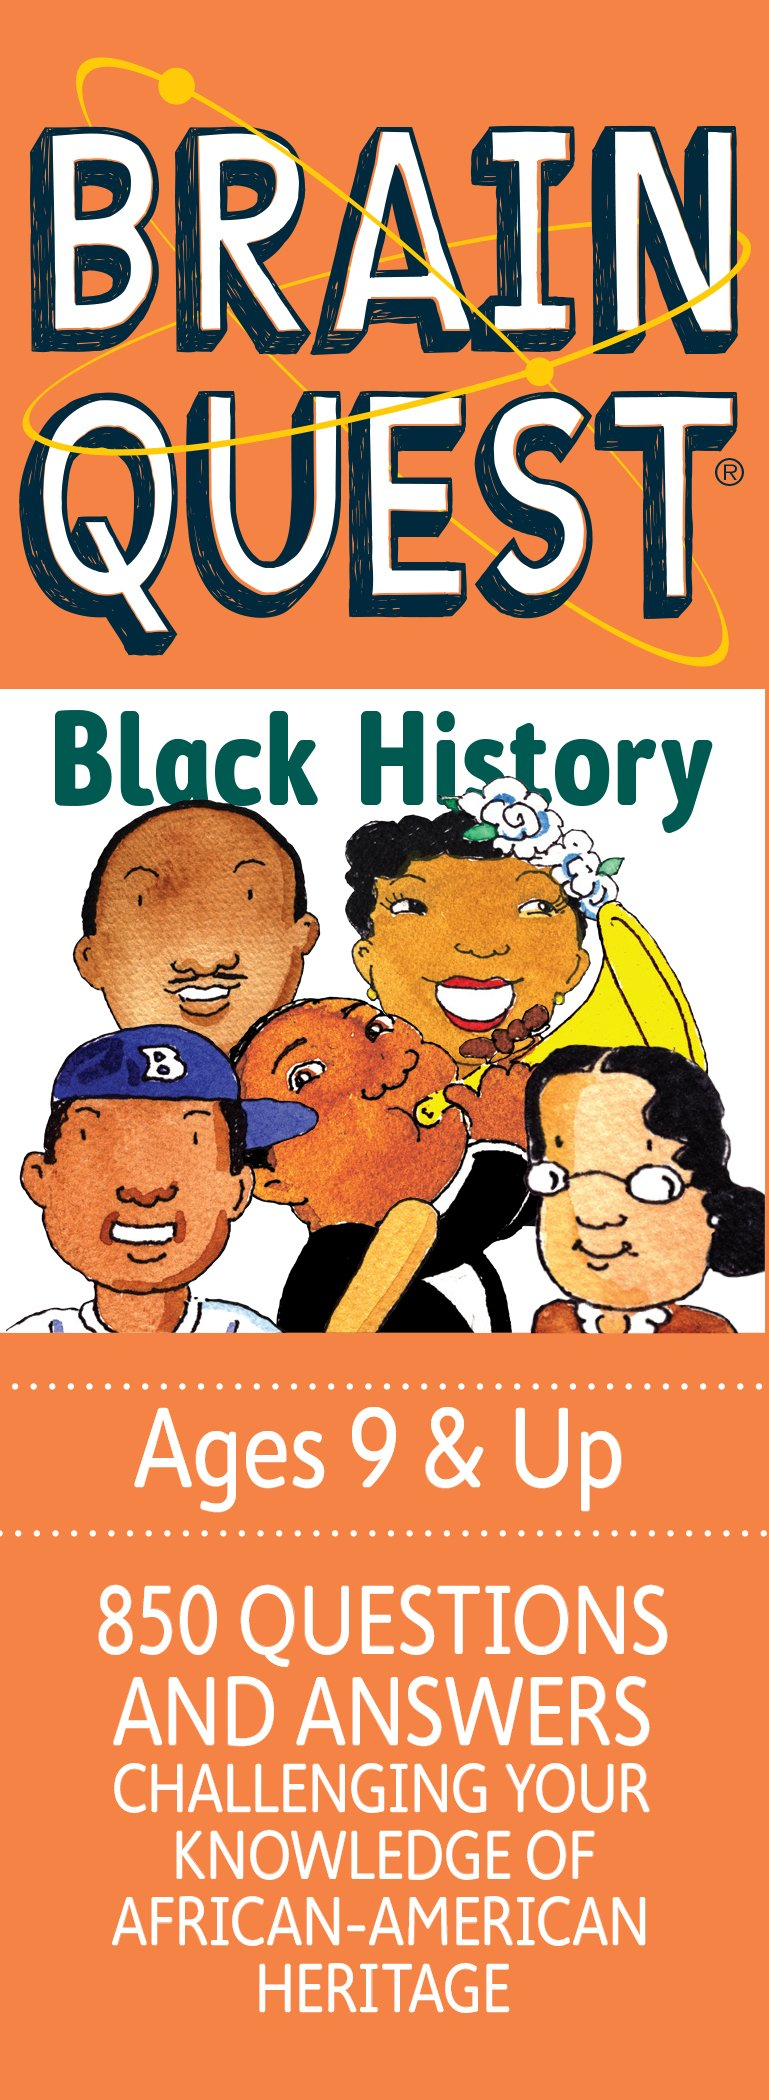 Brain Quest Black History by Brainquest (Image #1)